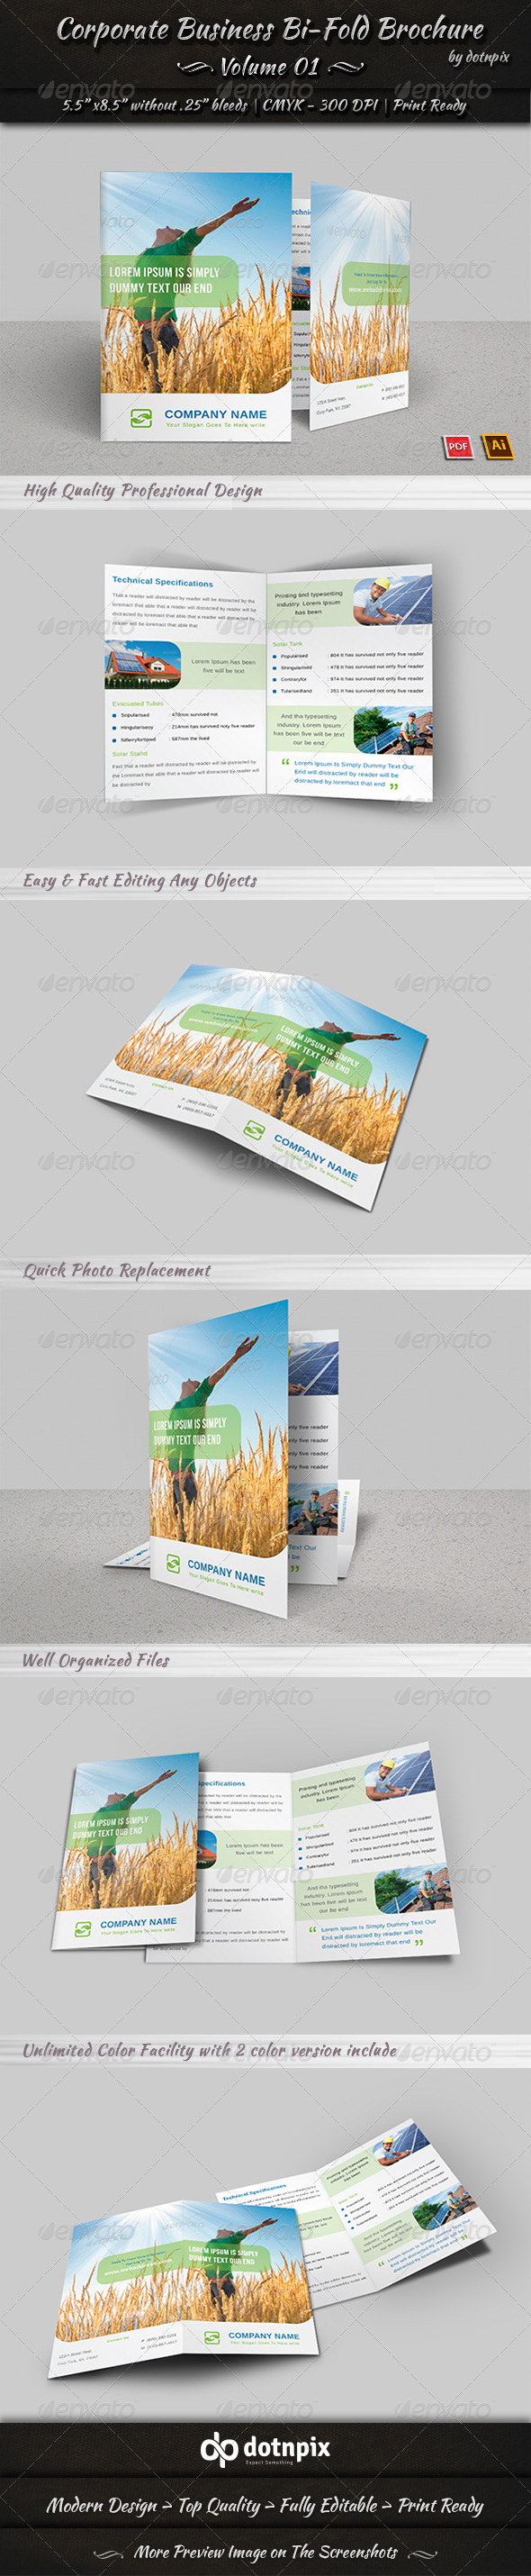 GraphicRiver Corporate Business Bi-Fold Brochure Volume 1 8045520